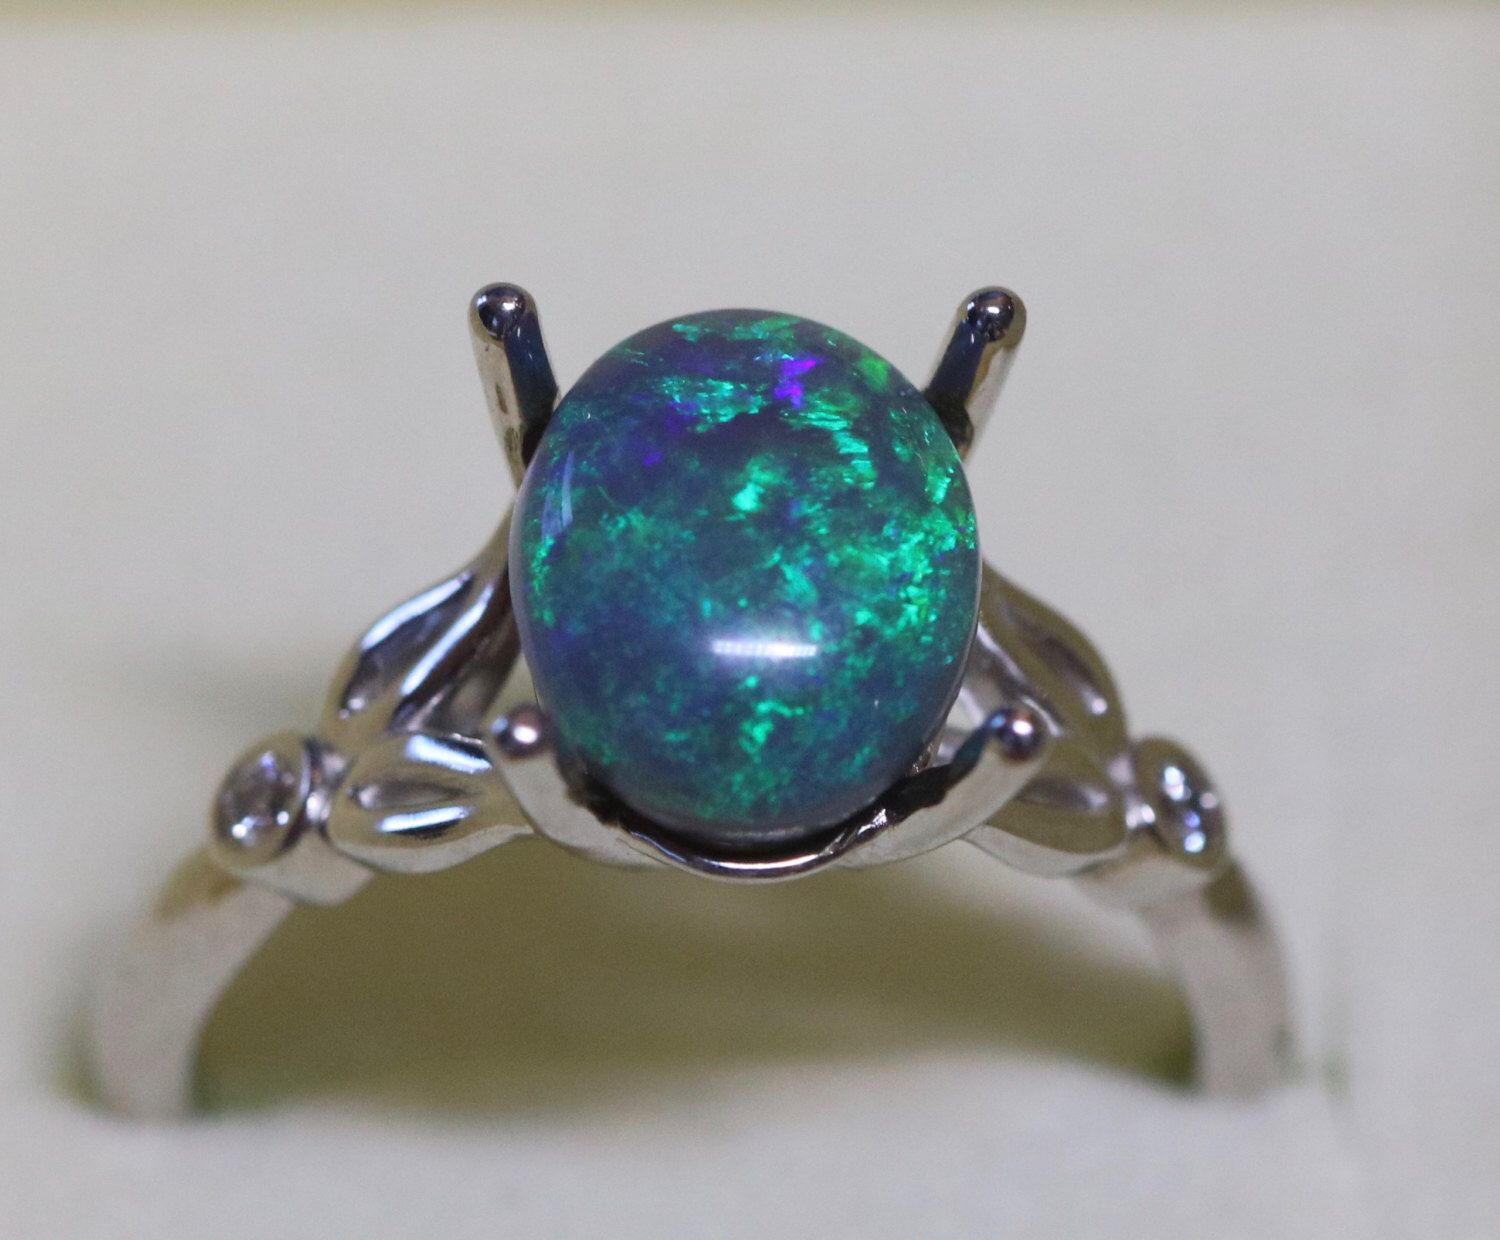 10k 14k Genuine Black Opal Ring Australian Opal 10k White Gold Ring With Diamonds Size 7 By Opalembers On Black Opal Ring Australian Black Opal Black Opal